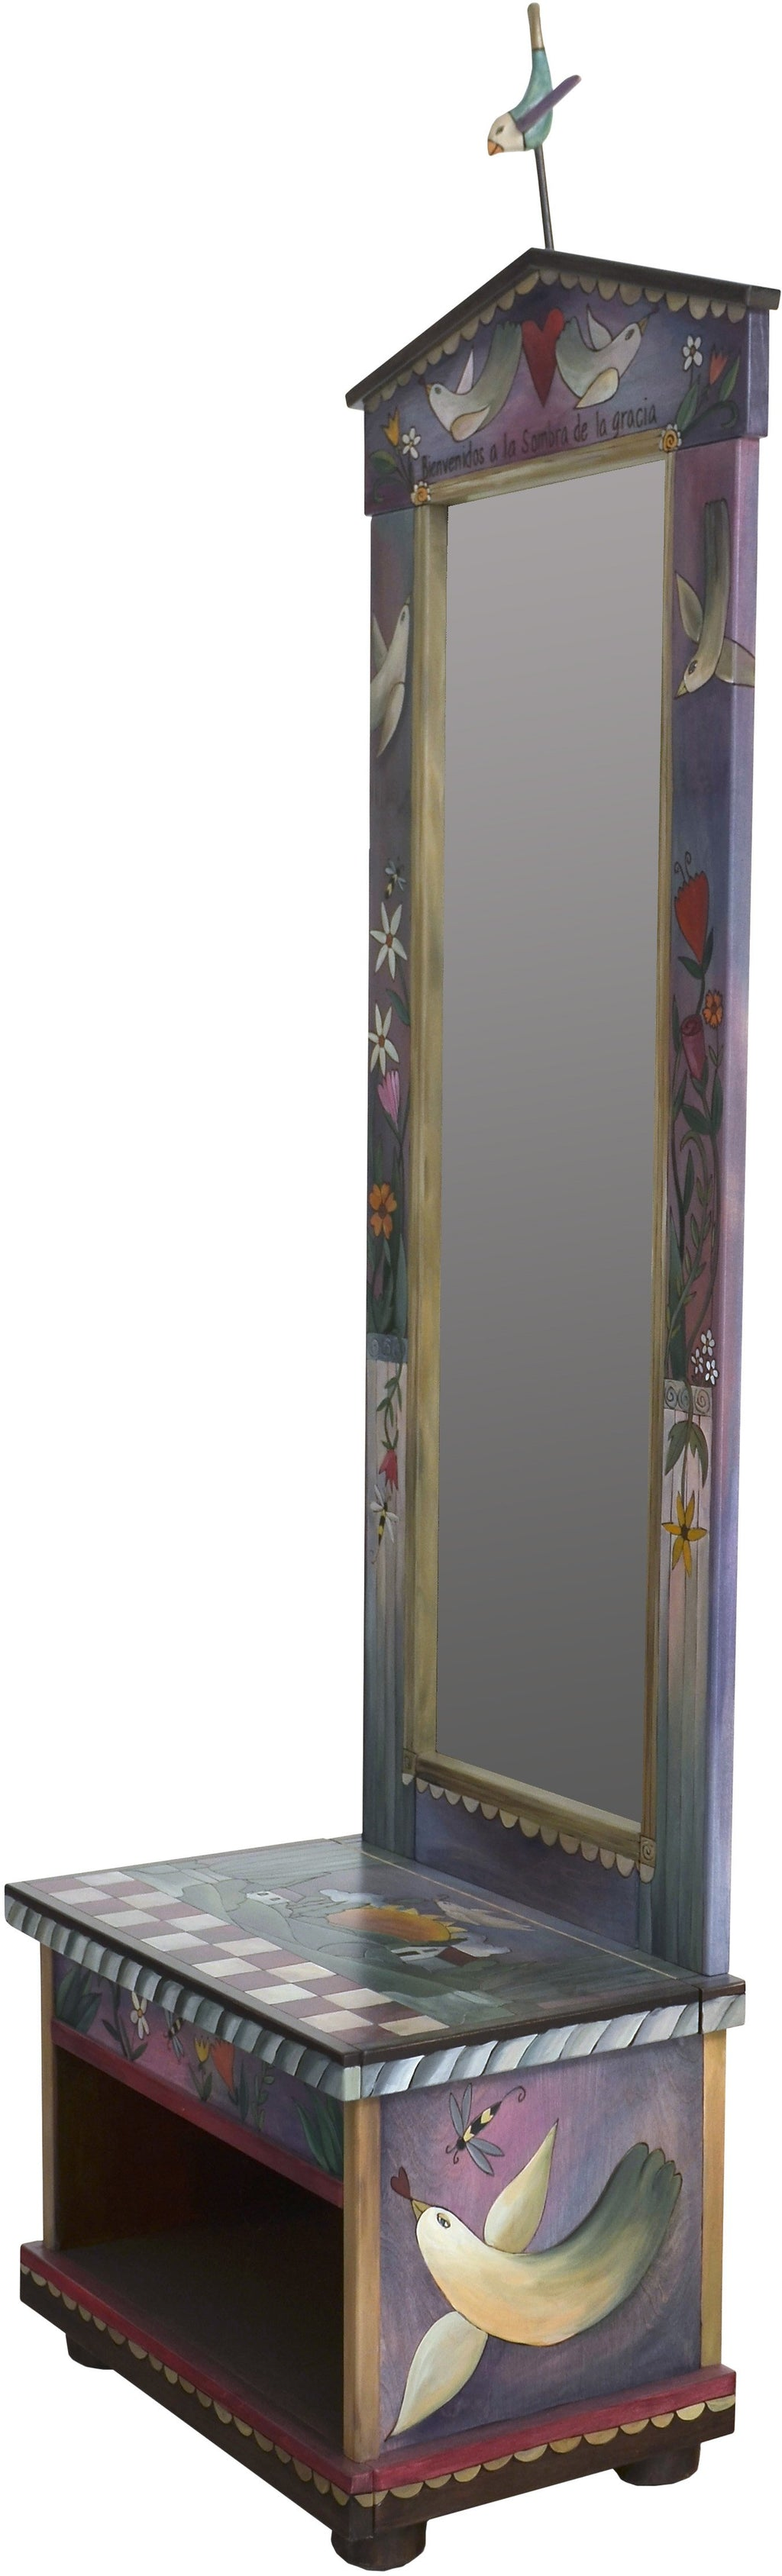 Hall Tree –  Beautiful folk art hall tree with mirror and storage bench featuring birds, landscape paintings, and checks